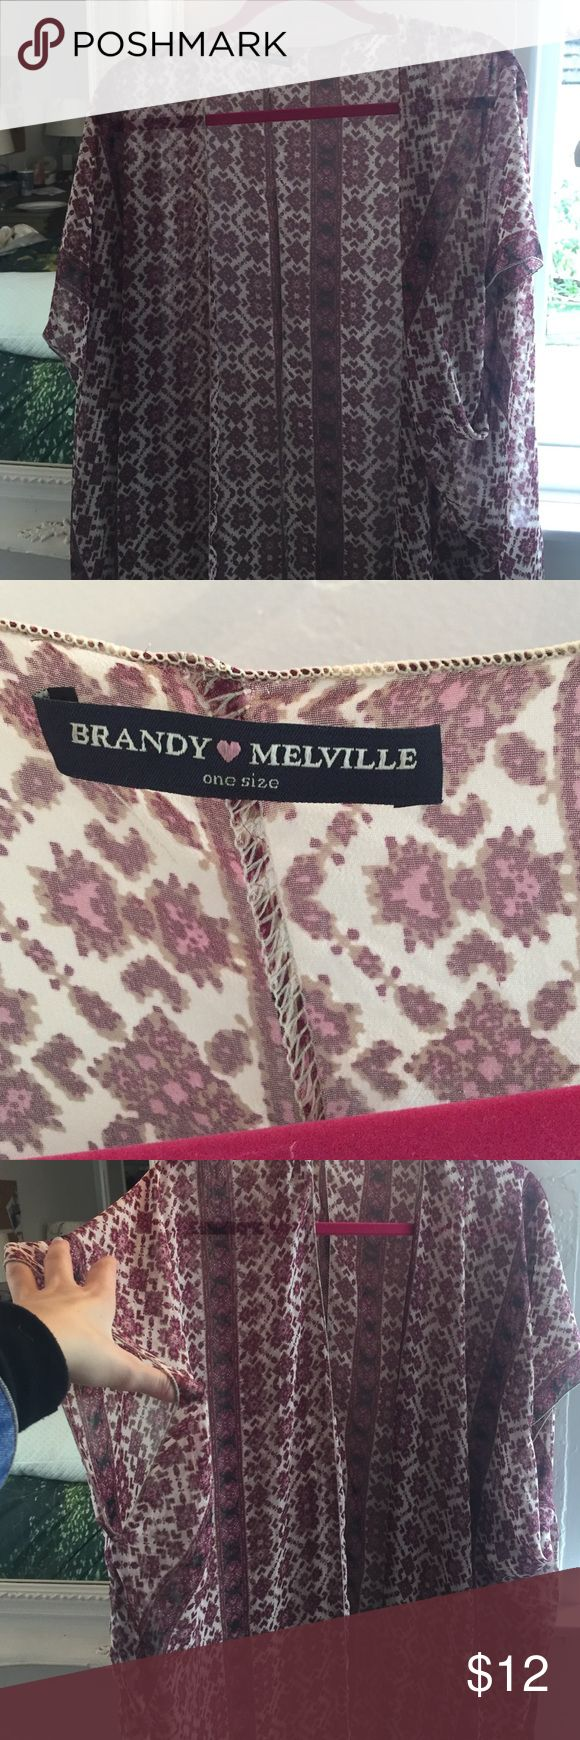 Brandy Melville cardigan/over slip Super cute brandy cardigan. Barely worn. One size Brandy Melville Sweaters Cardigans